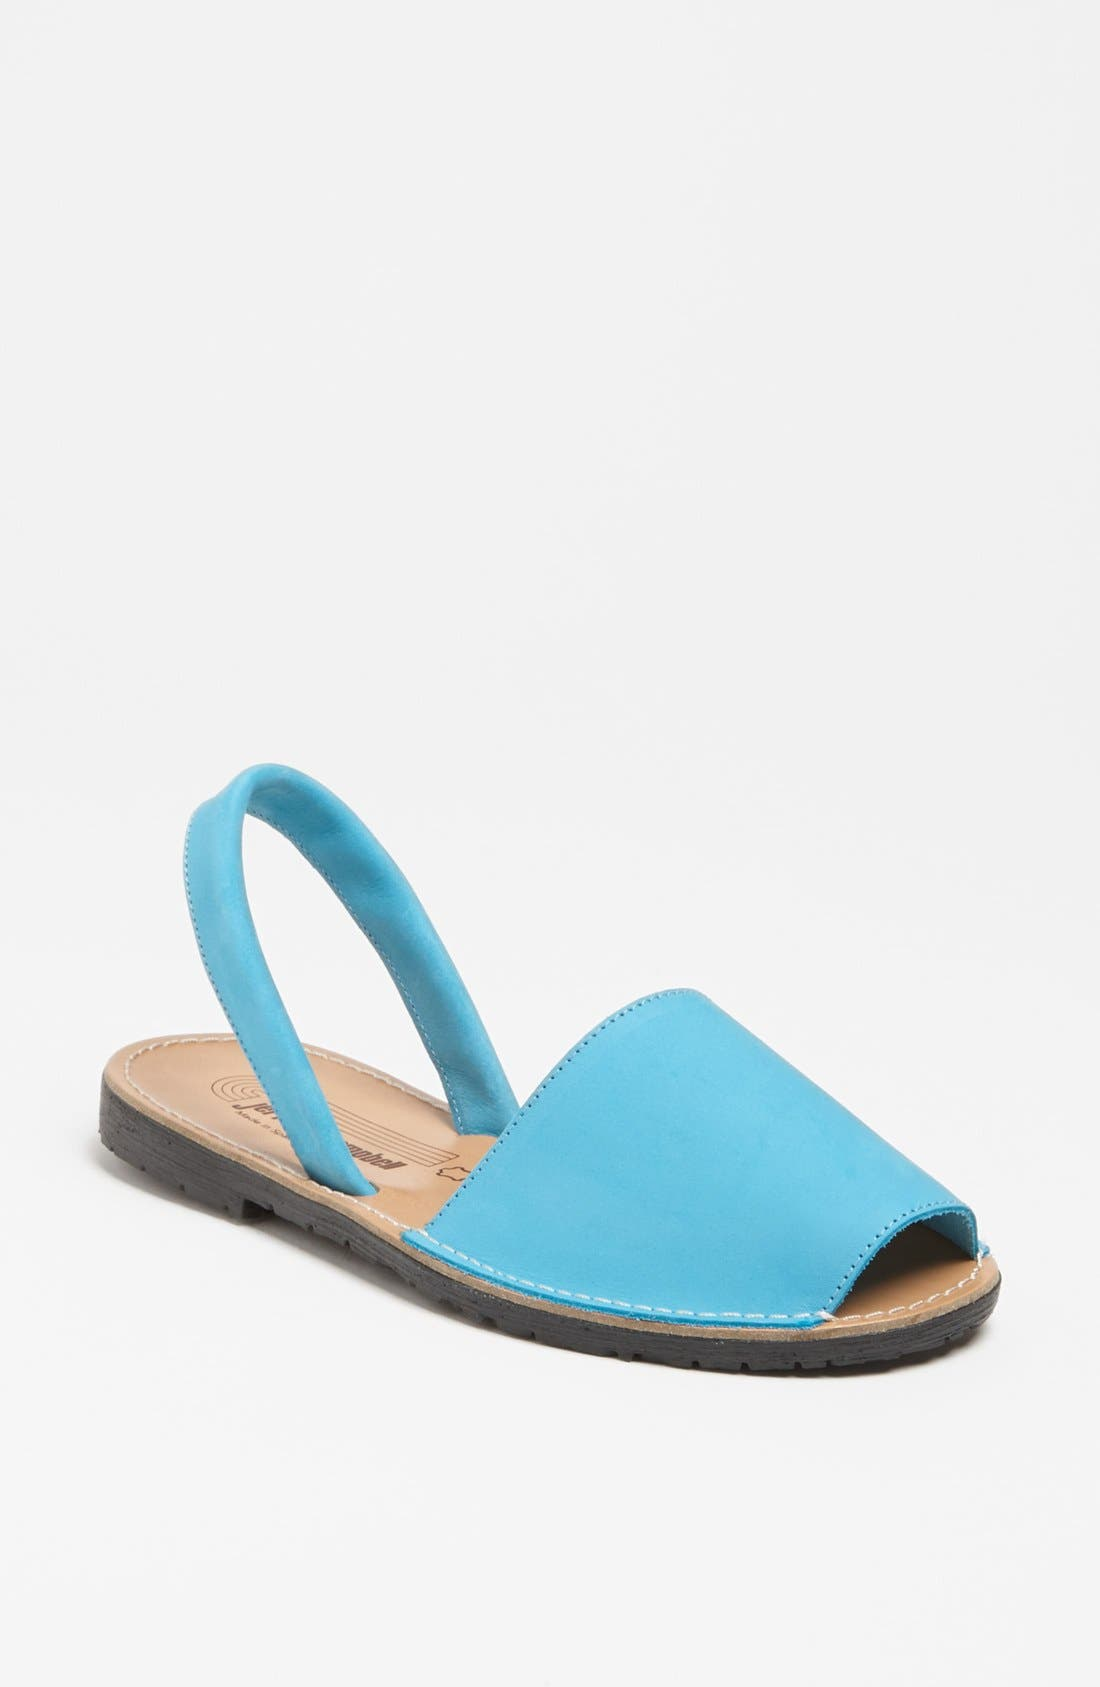 Main Image - Jeffrey Campbell 'Ibiza' Nubuck Leather Sandal